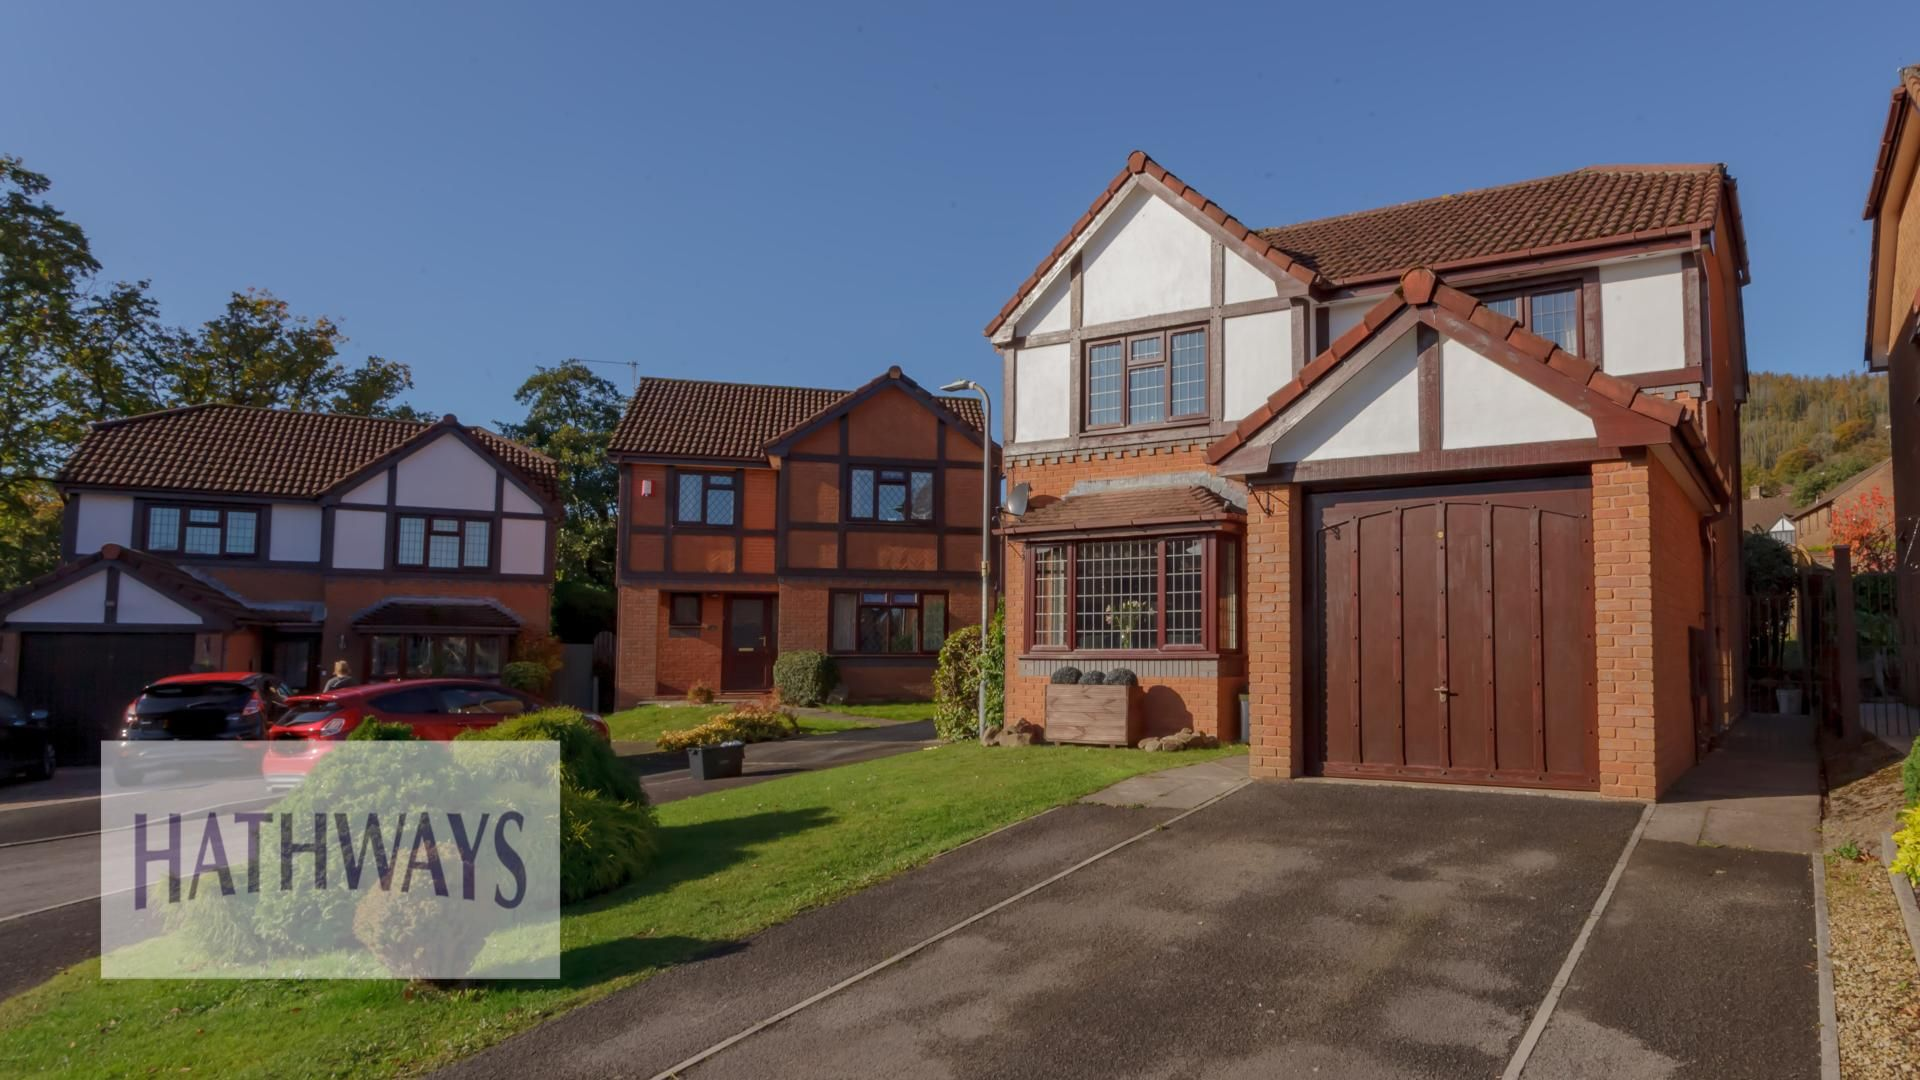 4 bed house for sale in Gelli Fawr Court, NP44